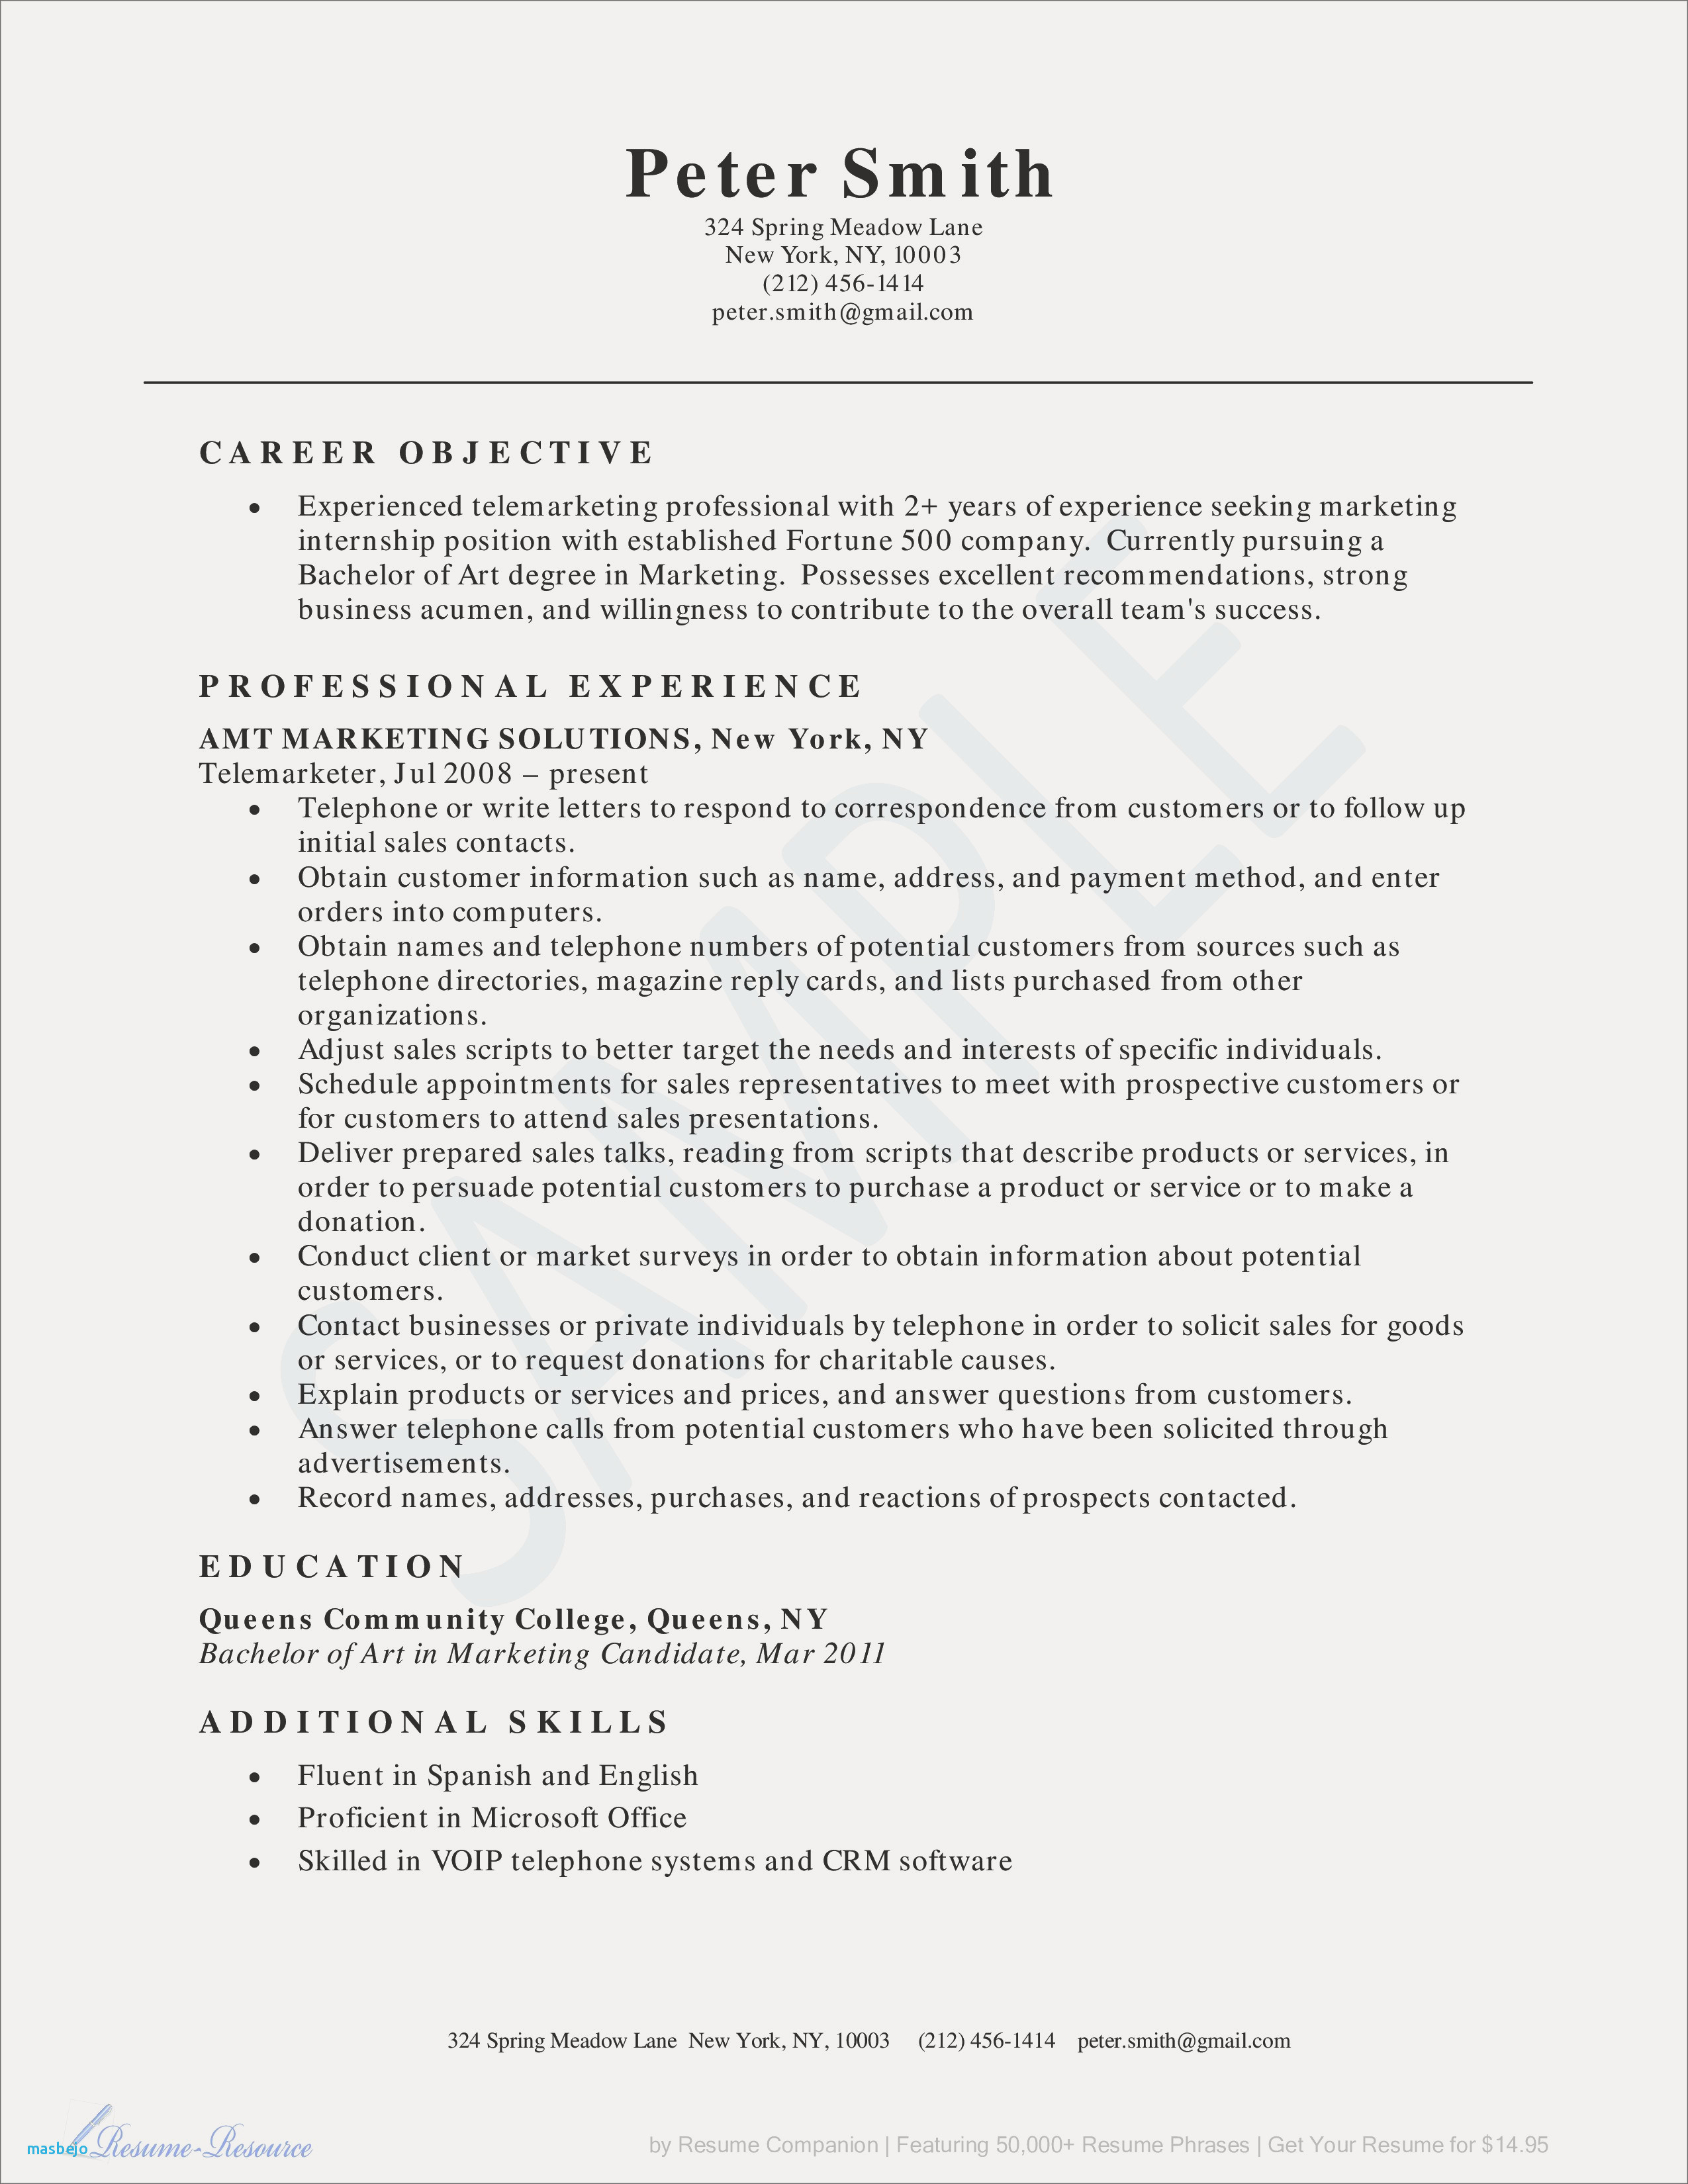 Office Job Resume - Post Fice Mail Handler Resume Best Templates Fice Job Jobs for